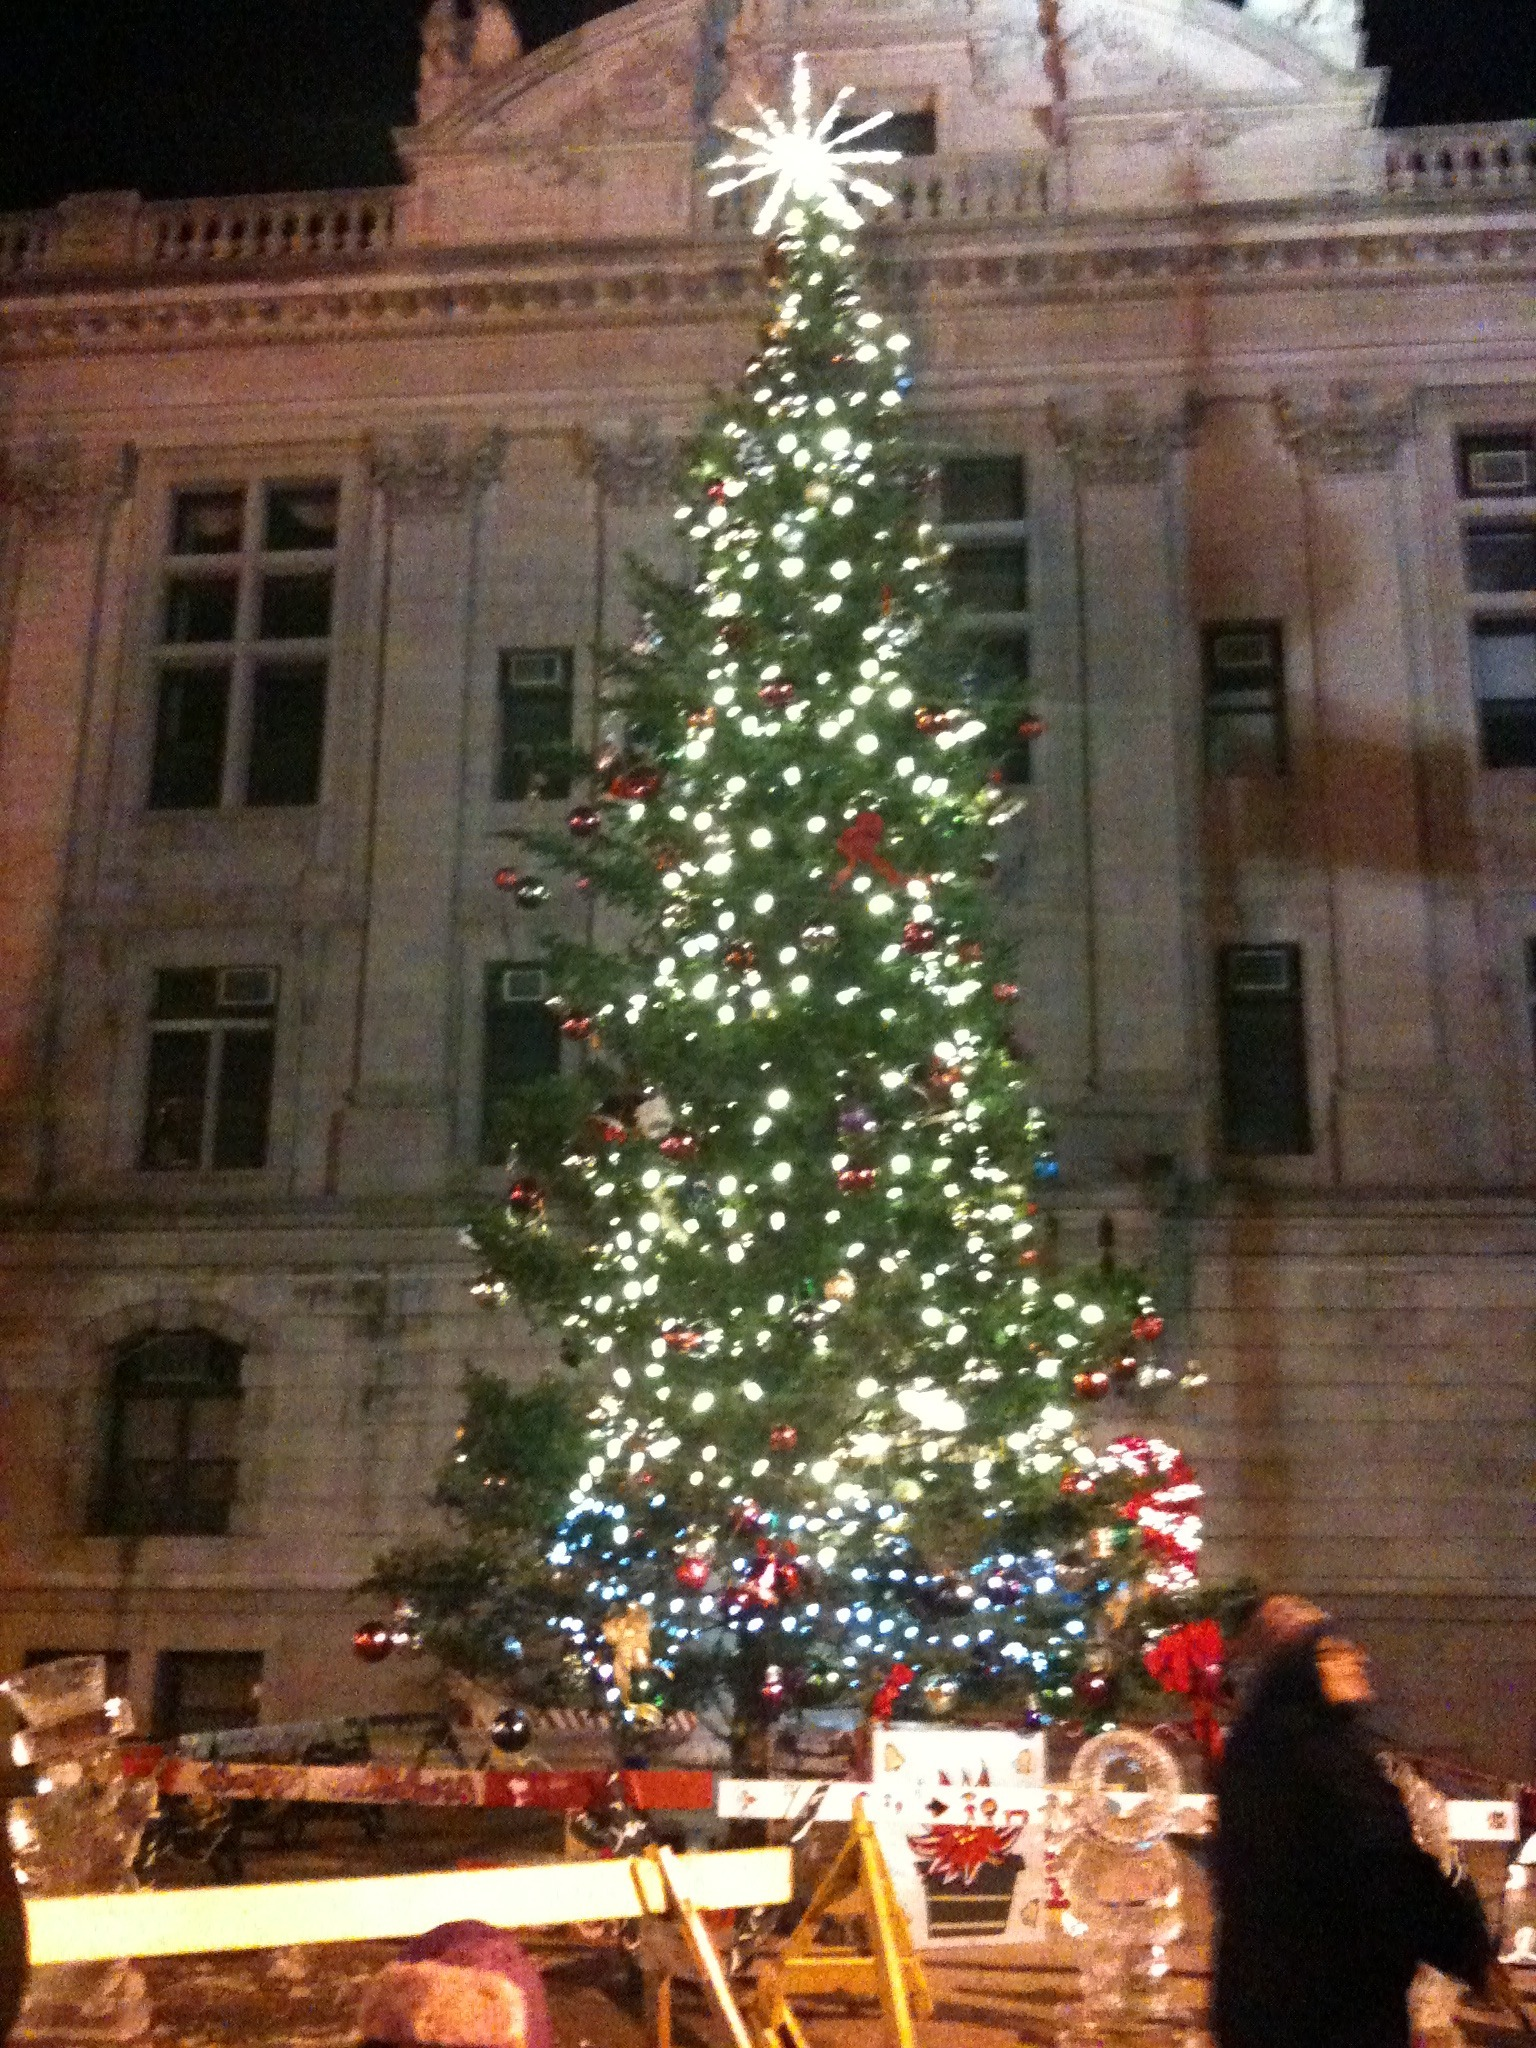 77ad5a49d227a2cd1714_lit_up_christmastree.jpg